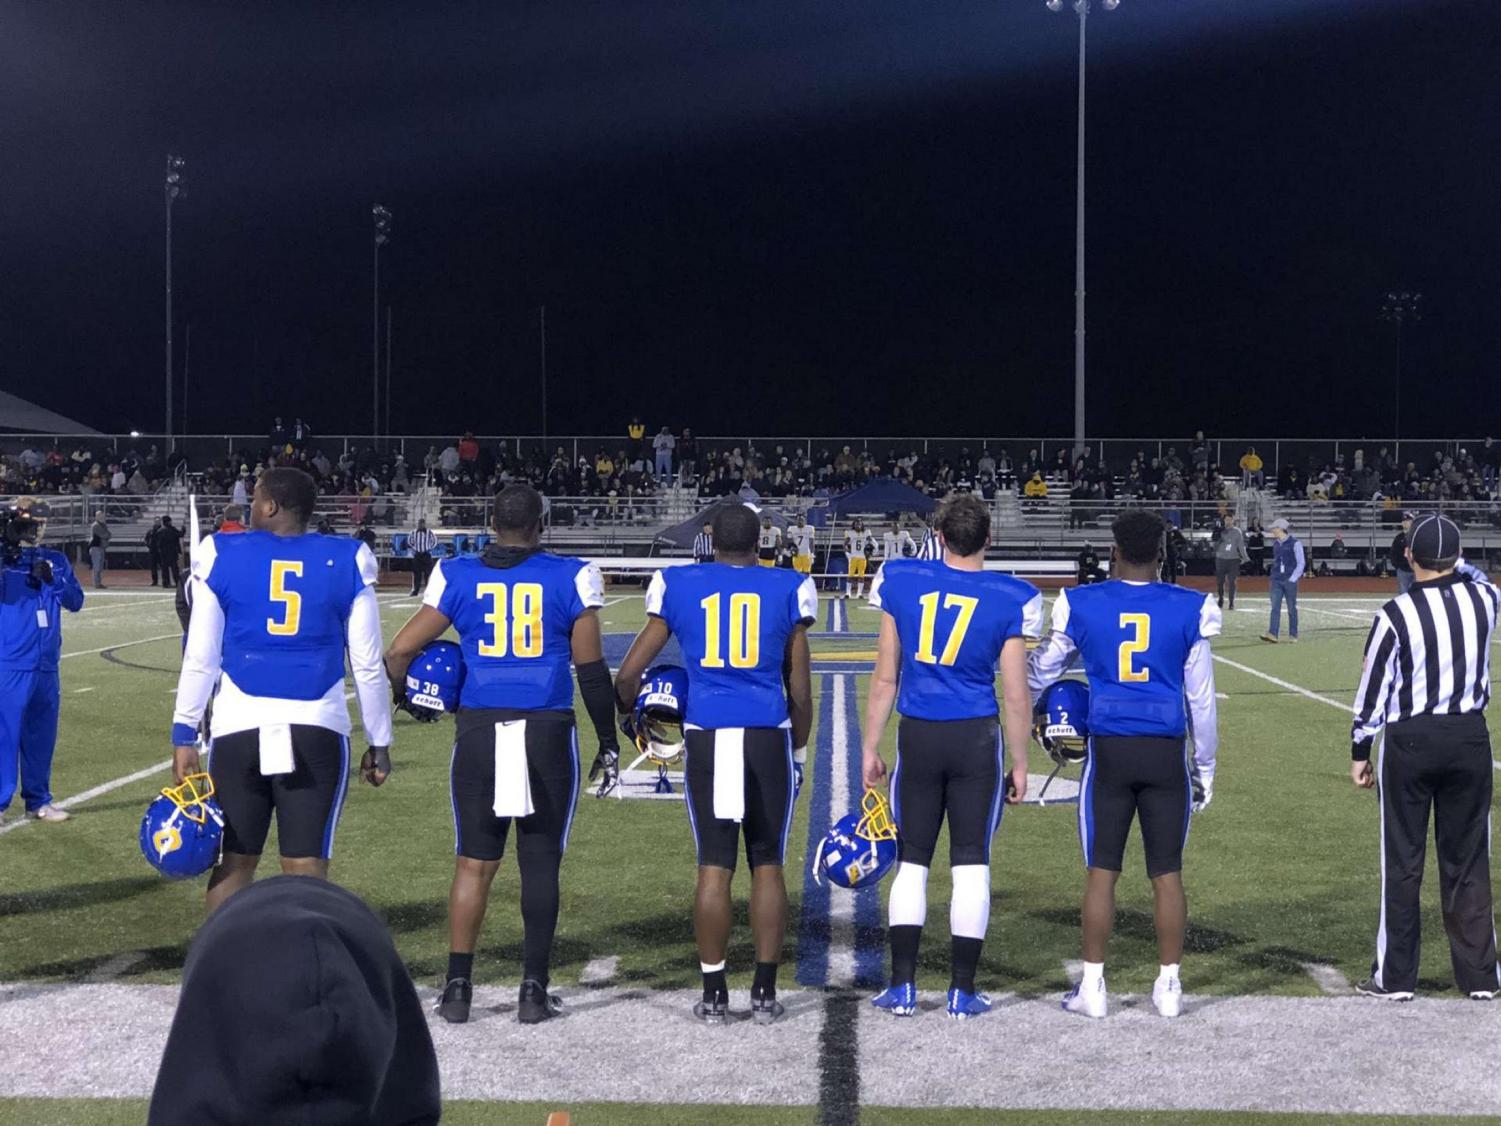 Seniors JJ Pegues, Kiyon Williams, Dude Person, John Meagher and Javian Gipson-Holmes line up before the coin toss for their game against Starkville. The Chargers won the game 25-16 and will play the Oak Grove Warriors in the 6A State Championship.